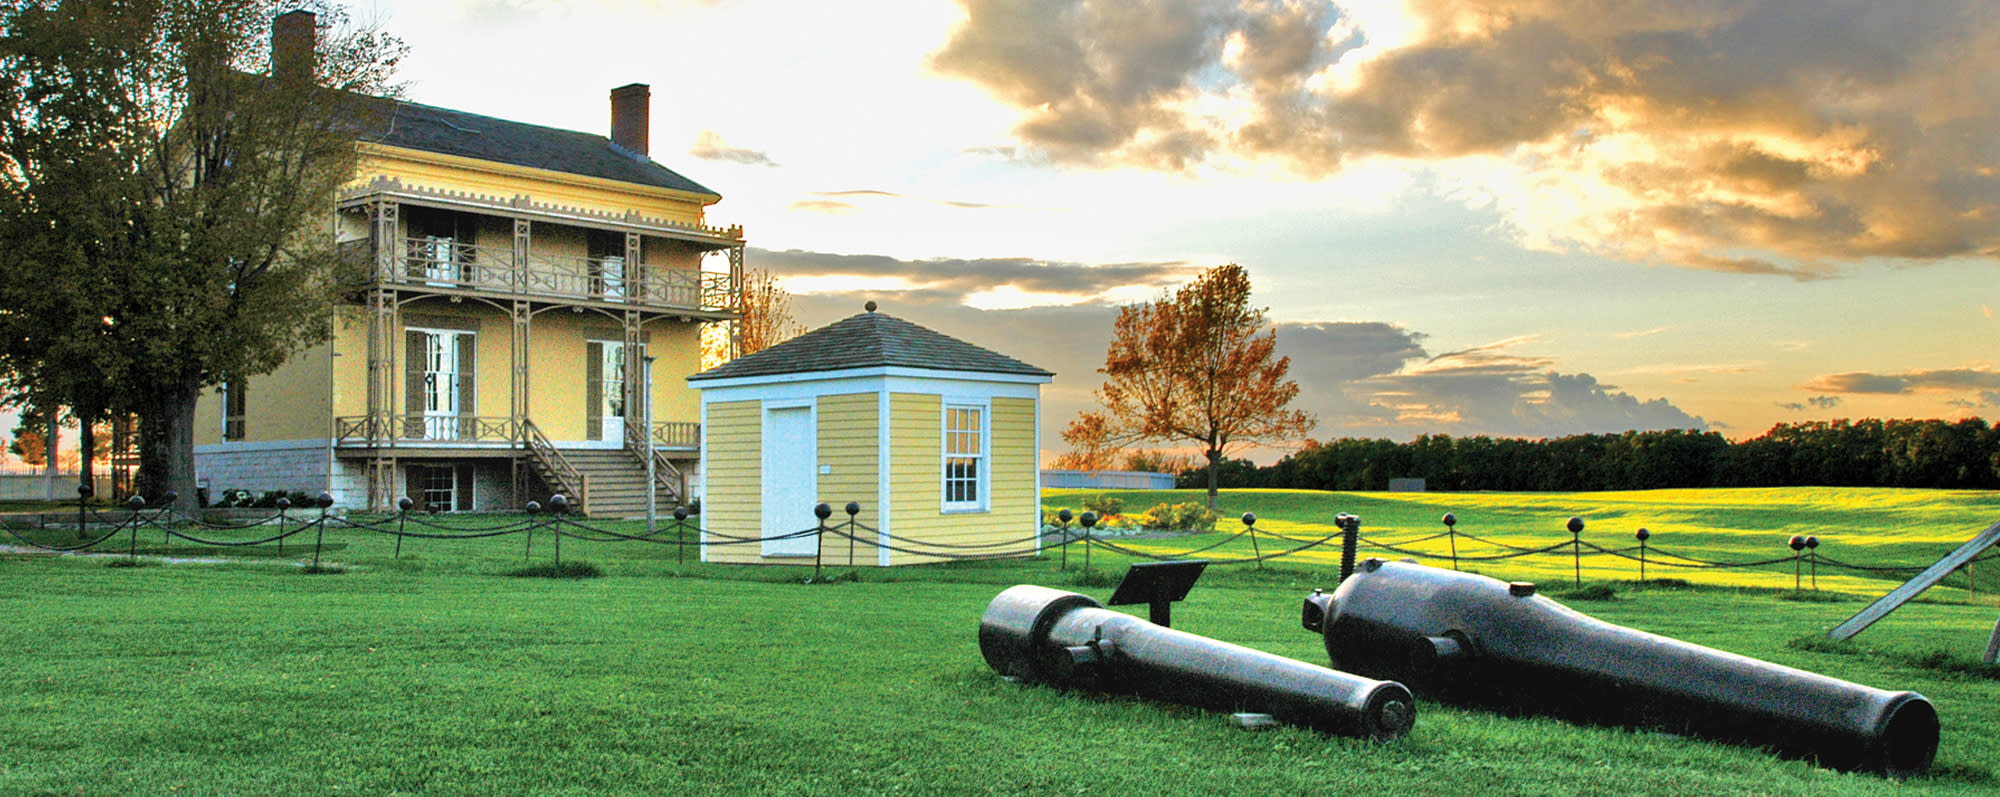 Two cannons resting on the field at Sackets Harbor Historic Site with a house and out-house in the background